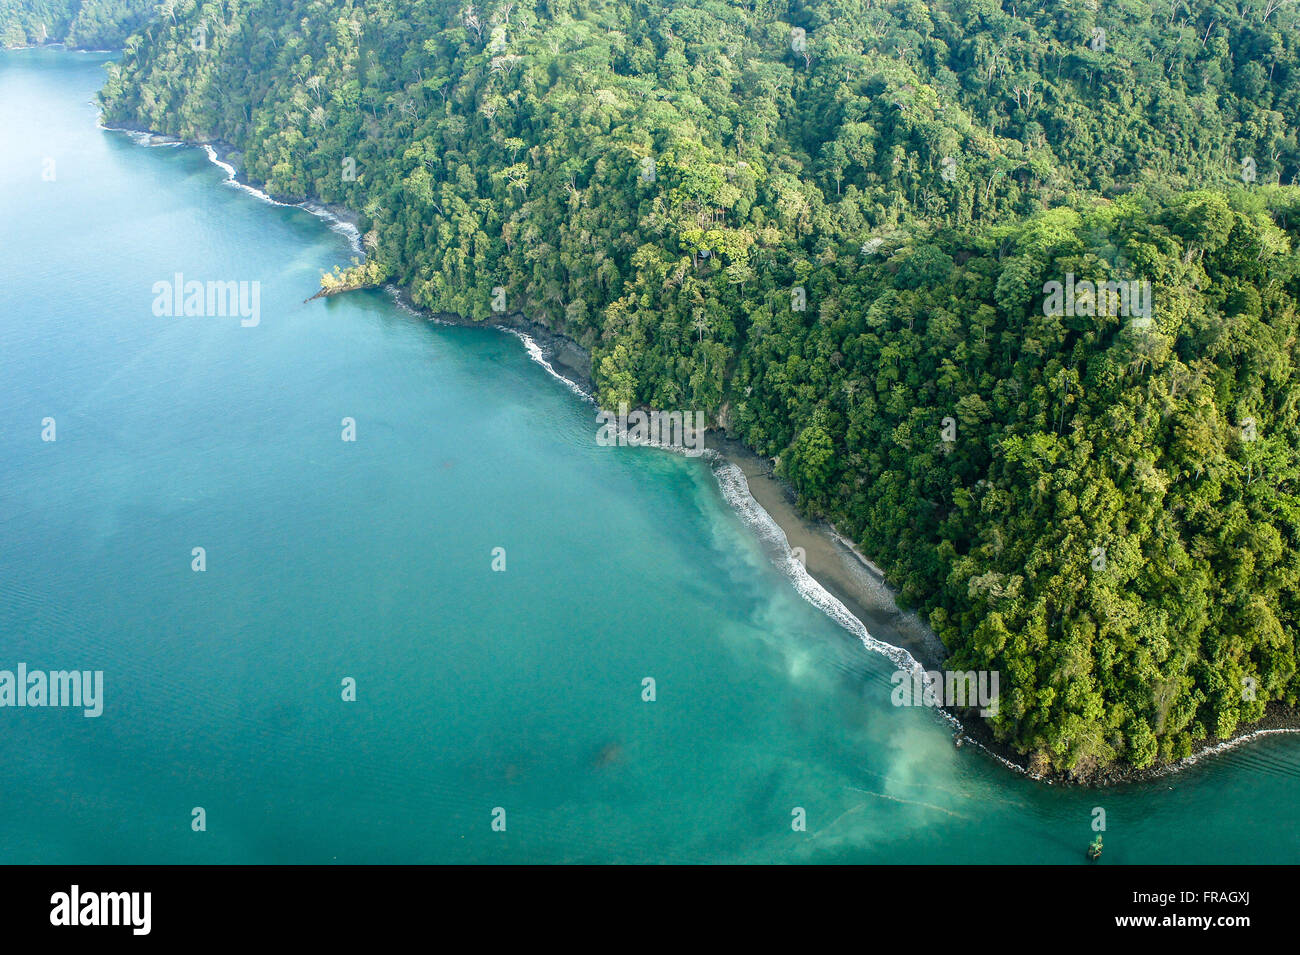 Aerial view of the Osa Peninsula - Stock Image